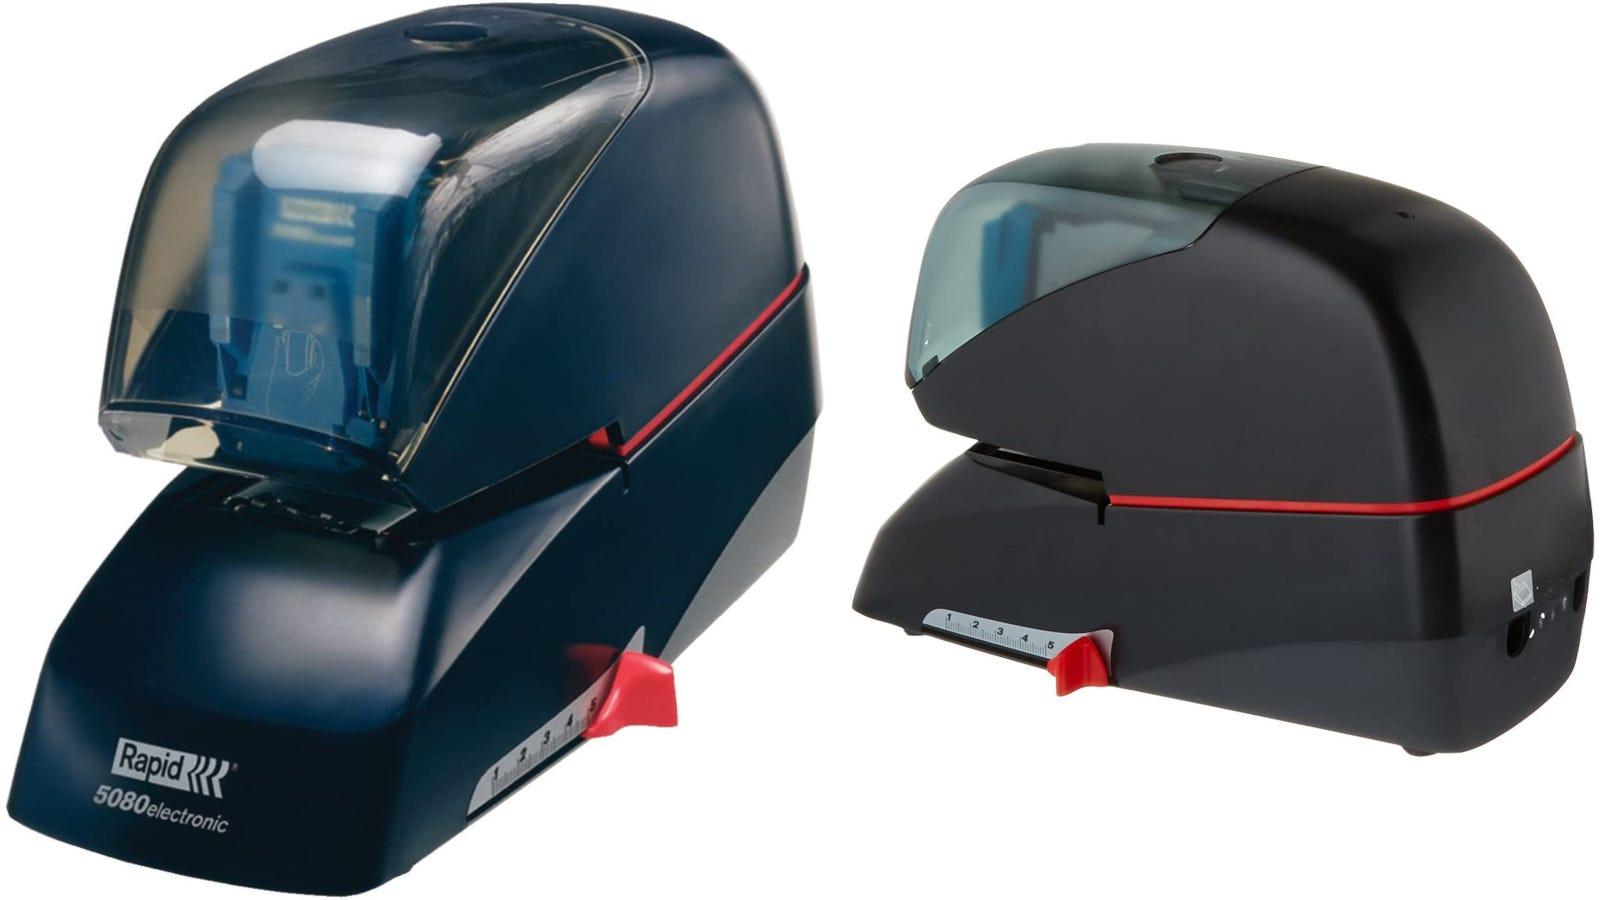 A front and back view of a black electric stapler with an adjustable stapling guide.